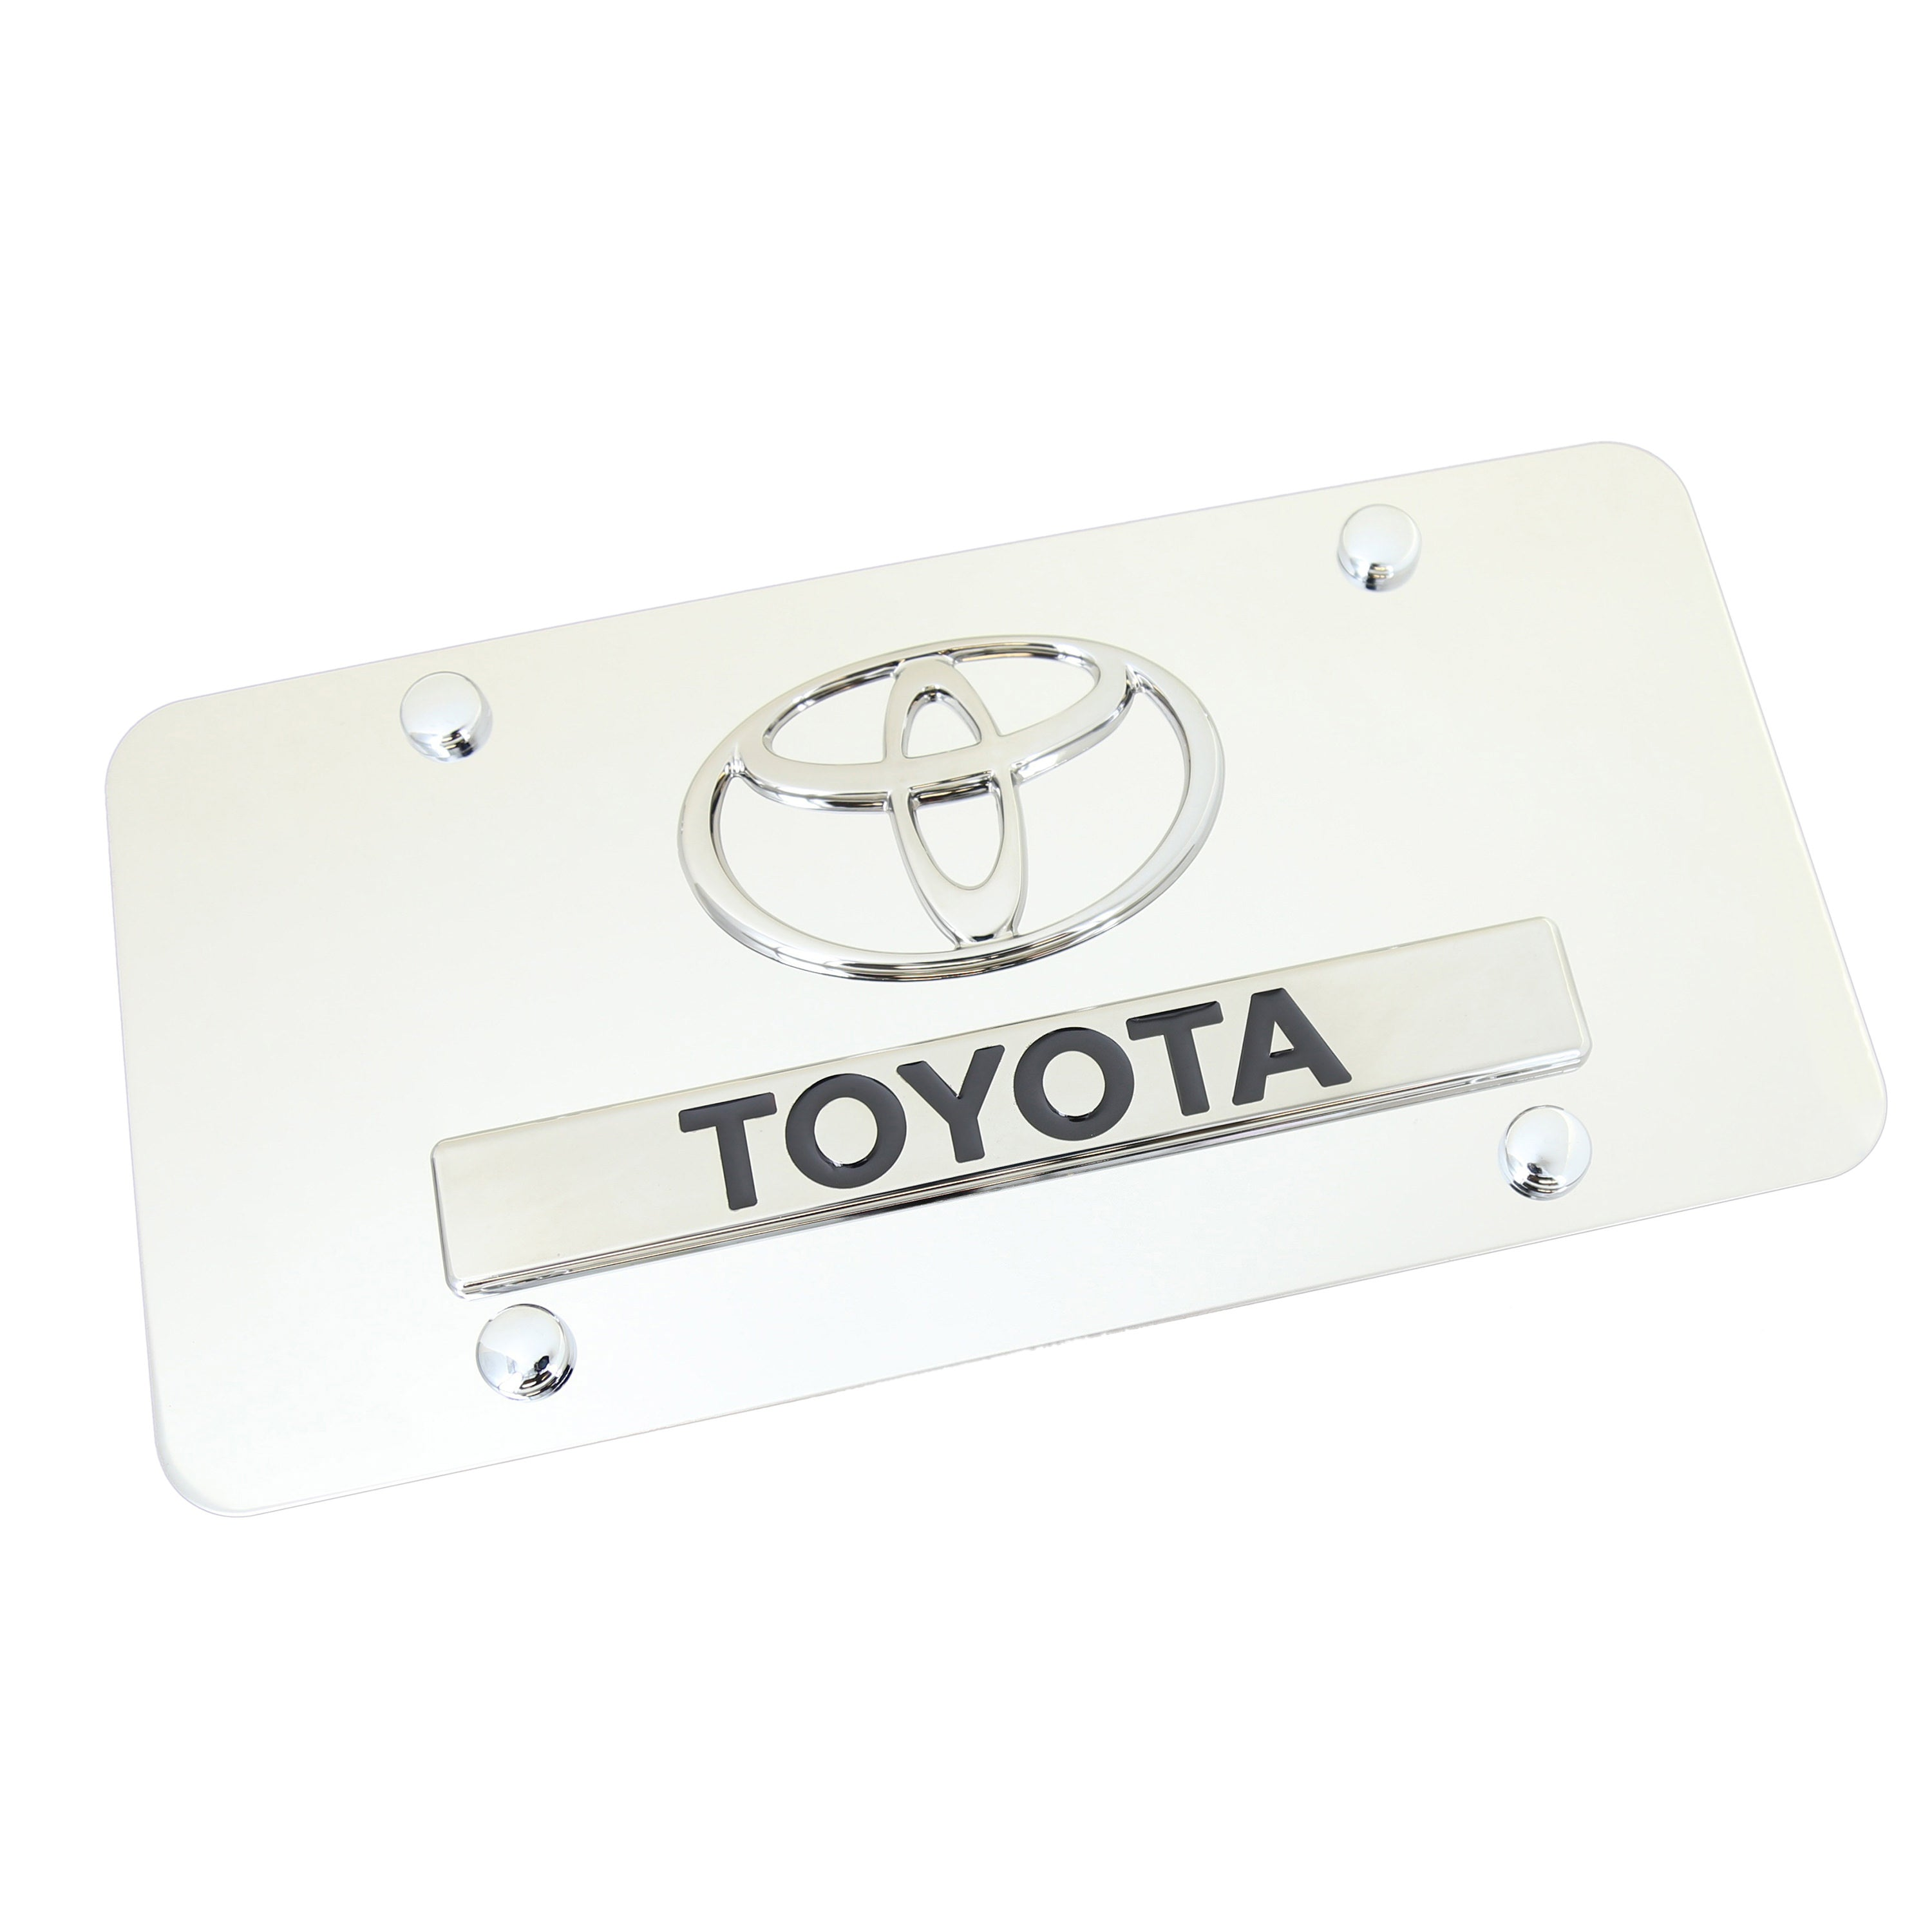 Toyota Dual Logo License Plate (Chrome) - Custom Werks